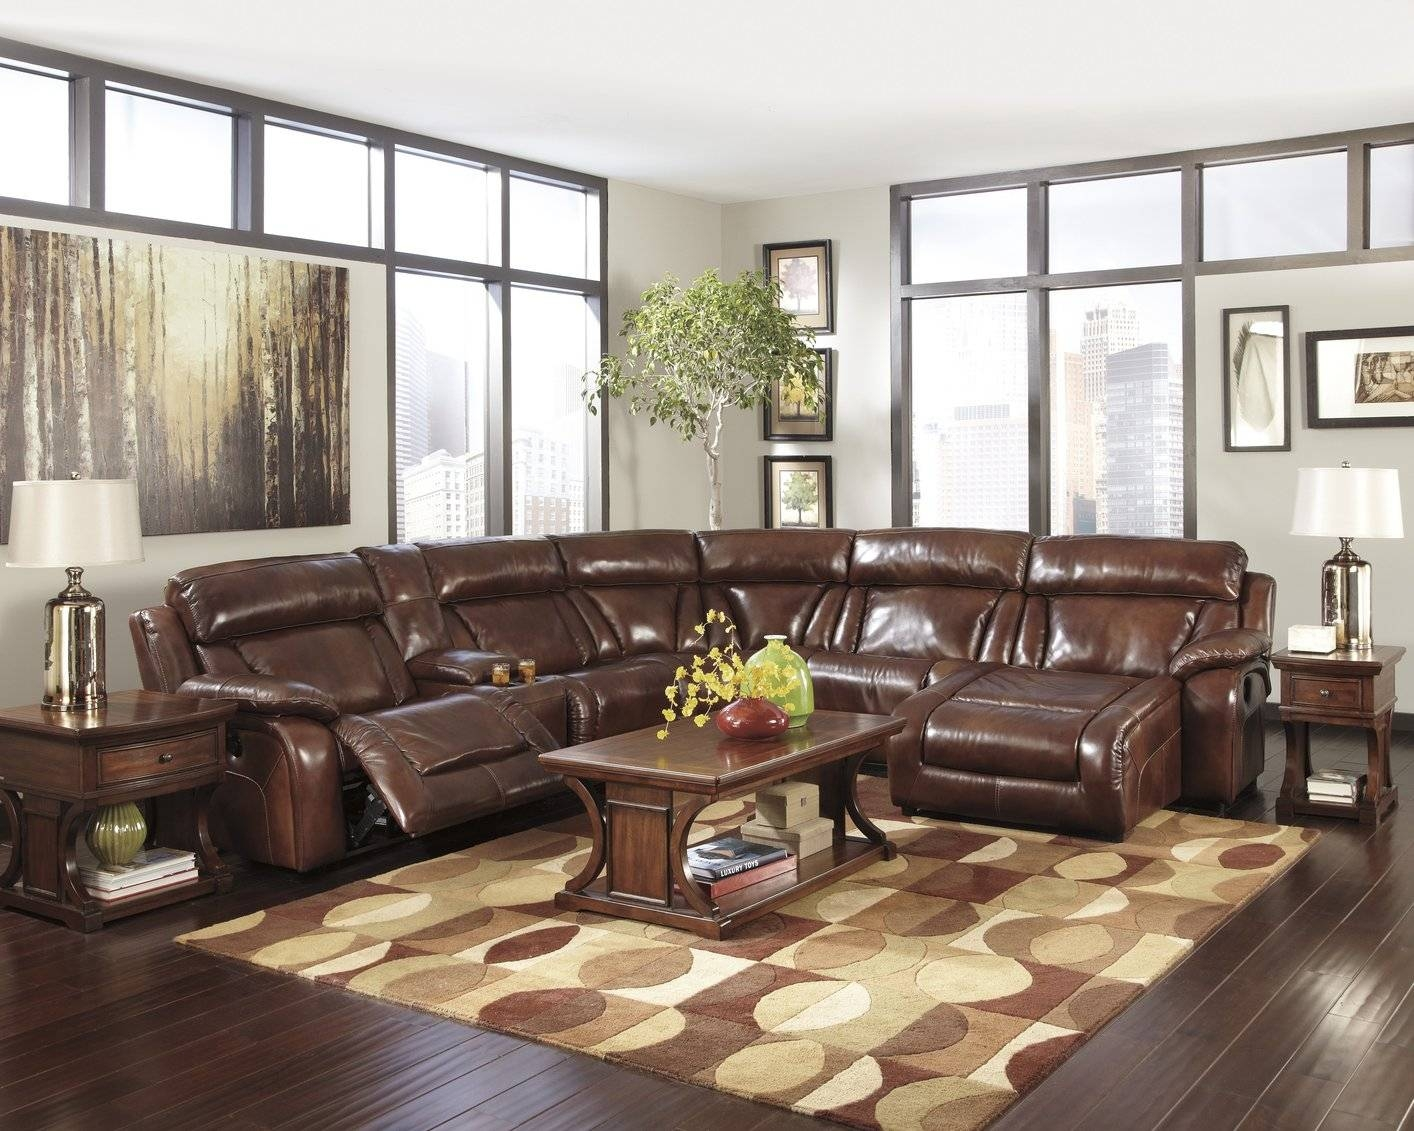 Sectional Sofa Clearance: The Best Way To Get High Quality Sofa In pertaining to High End Leather Sectional Sofa (Image 25 of 25)